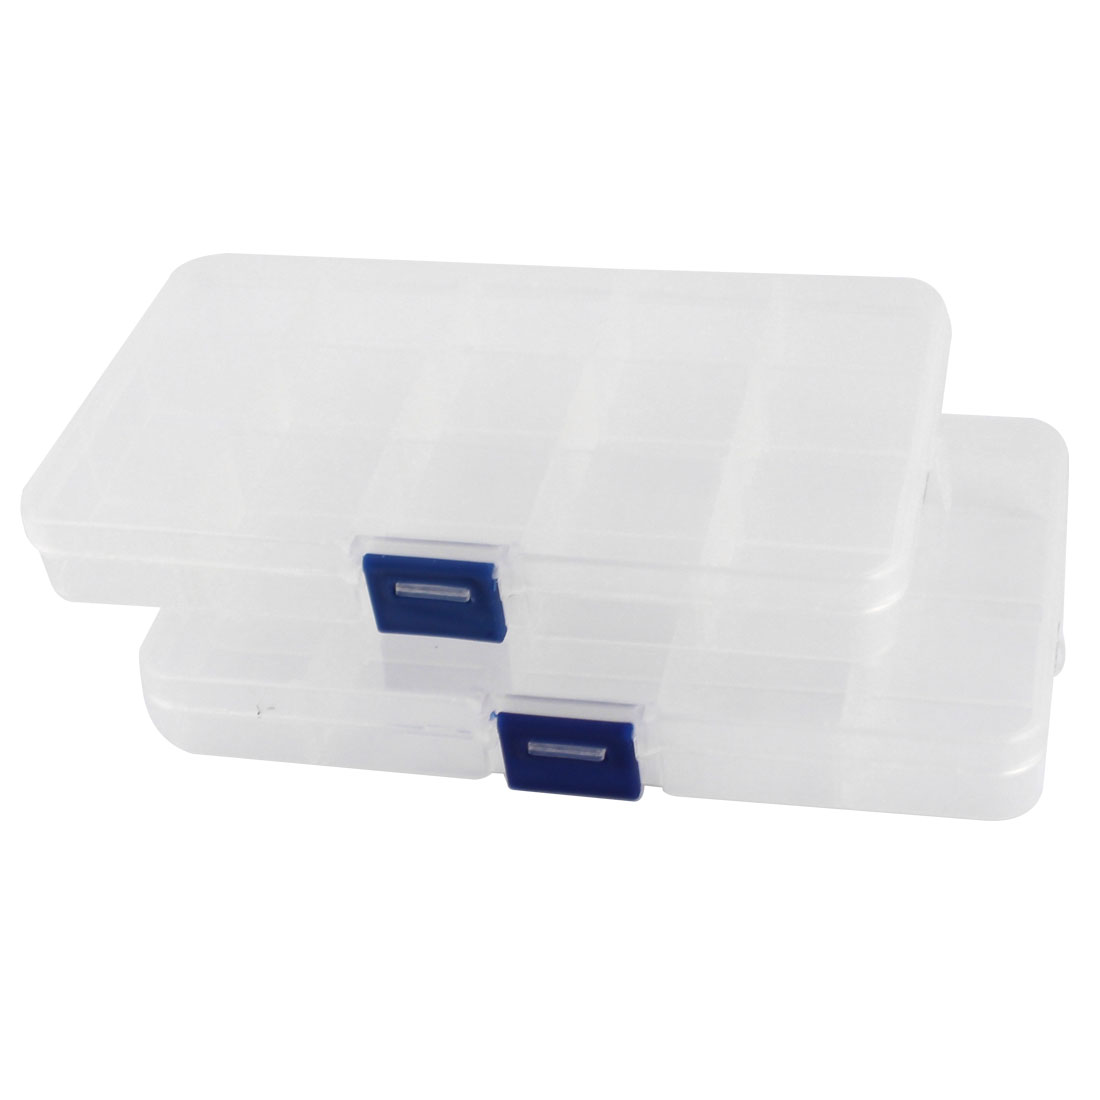 2pcs Clear White Plastic 15 Slots Electronic Components Storage Case Box Organizer